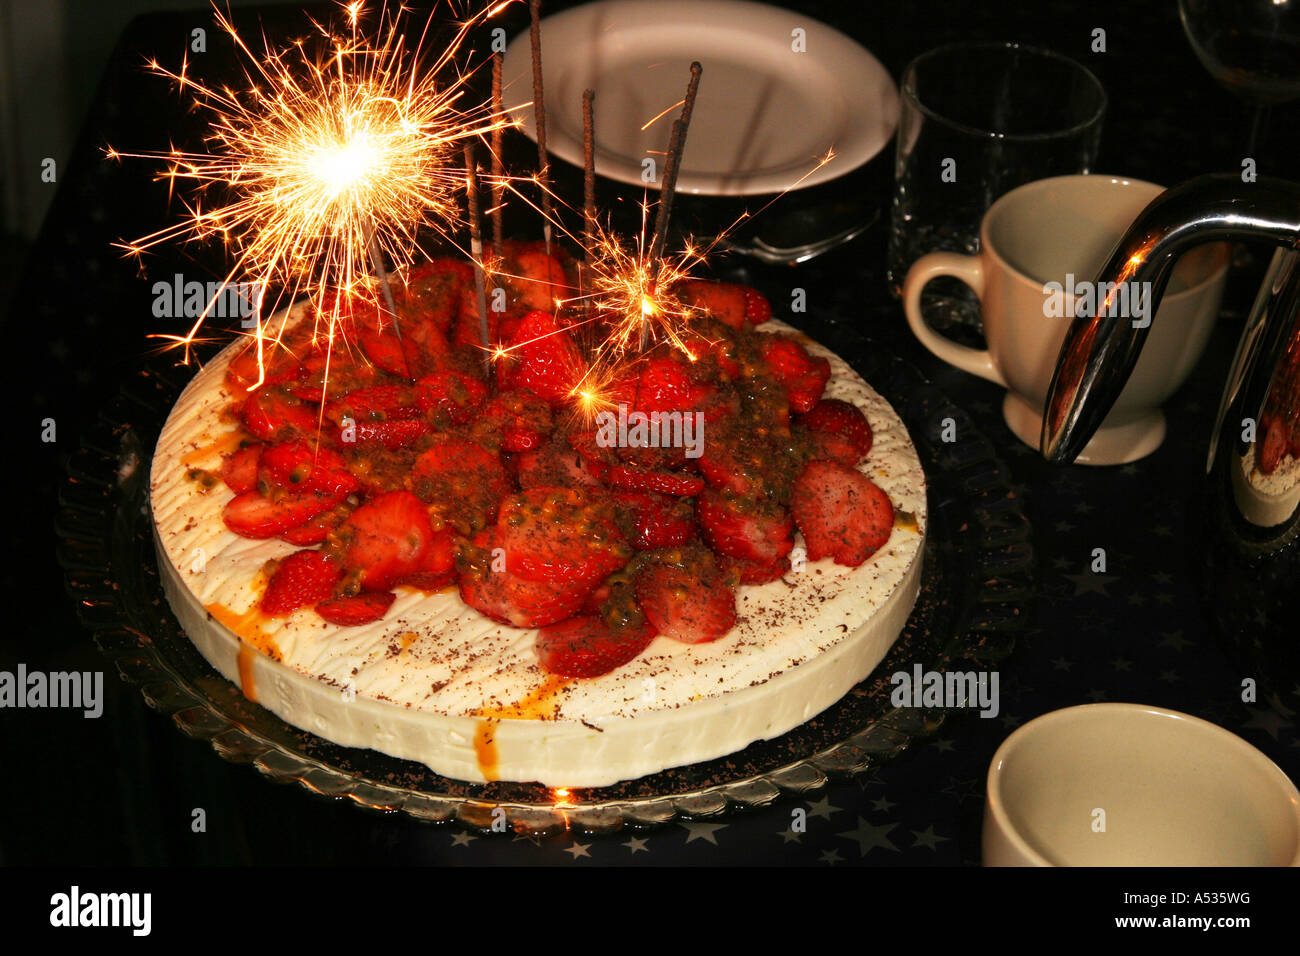 A Birthday Cake With Sparklers